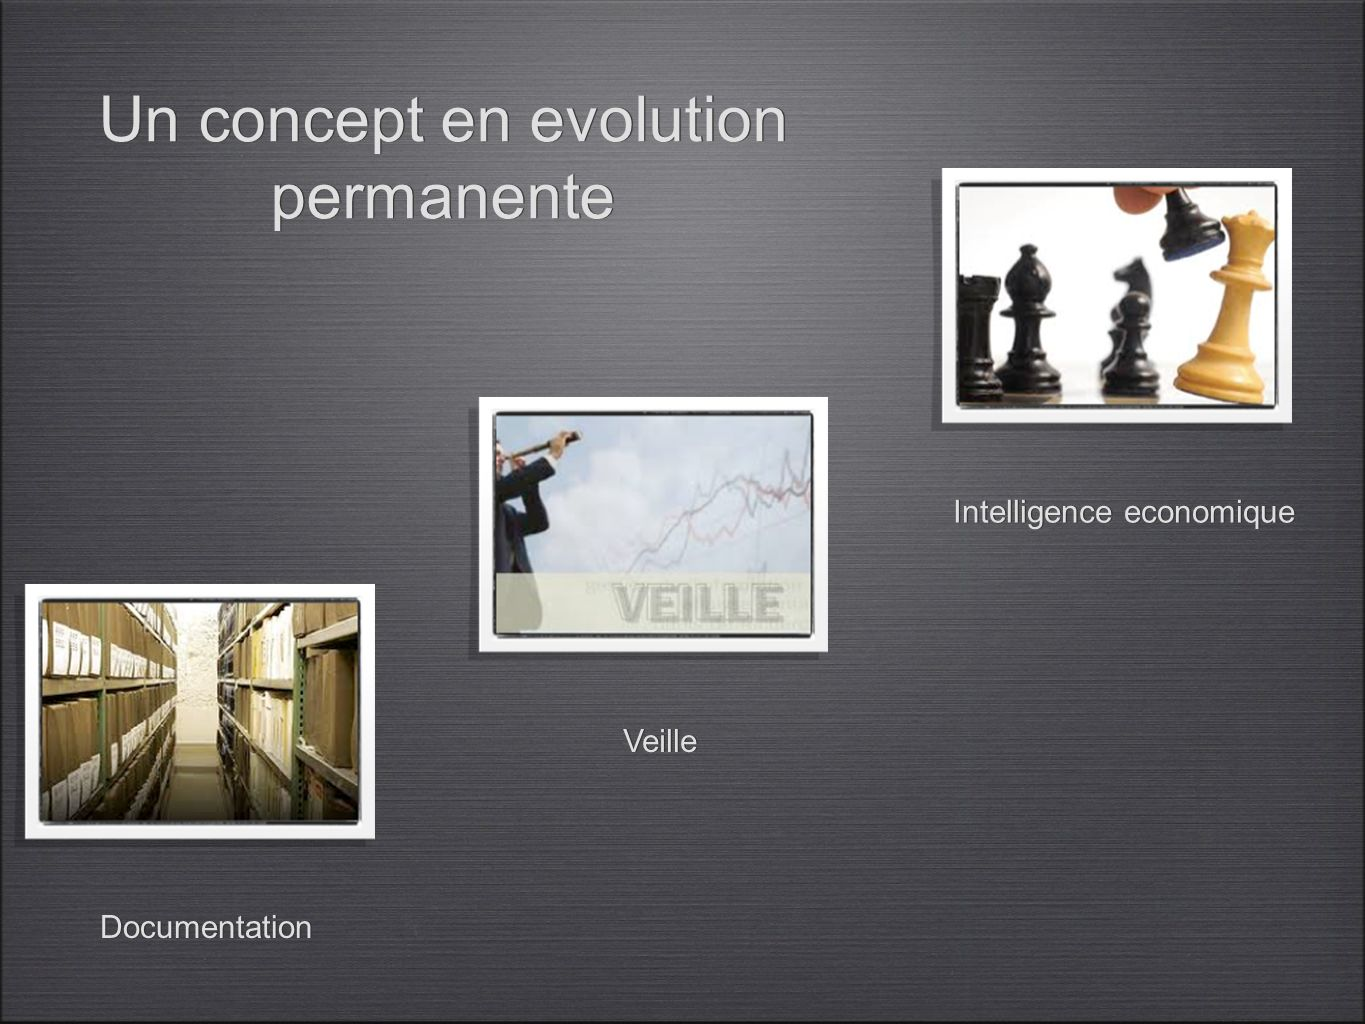 Un concept en evolution permanente